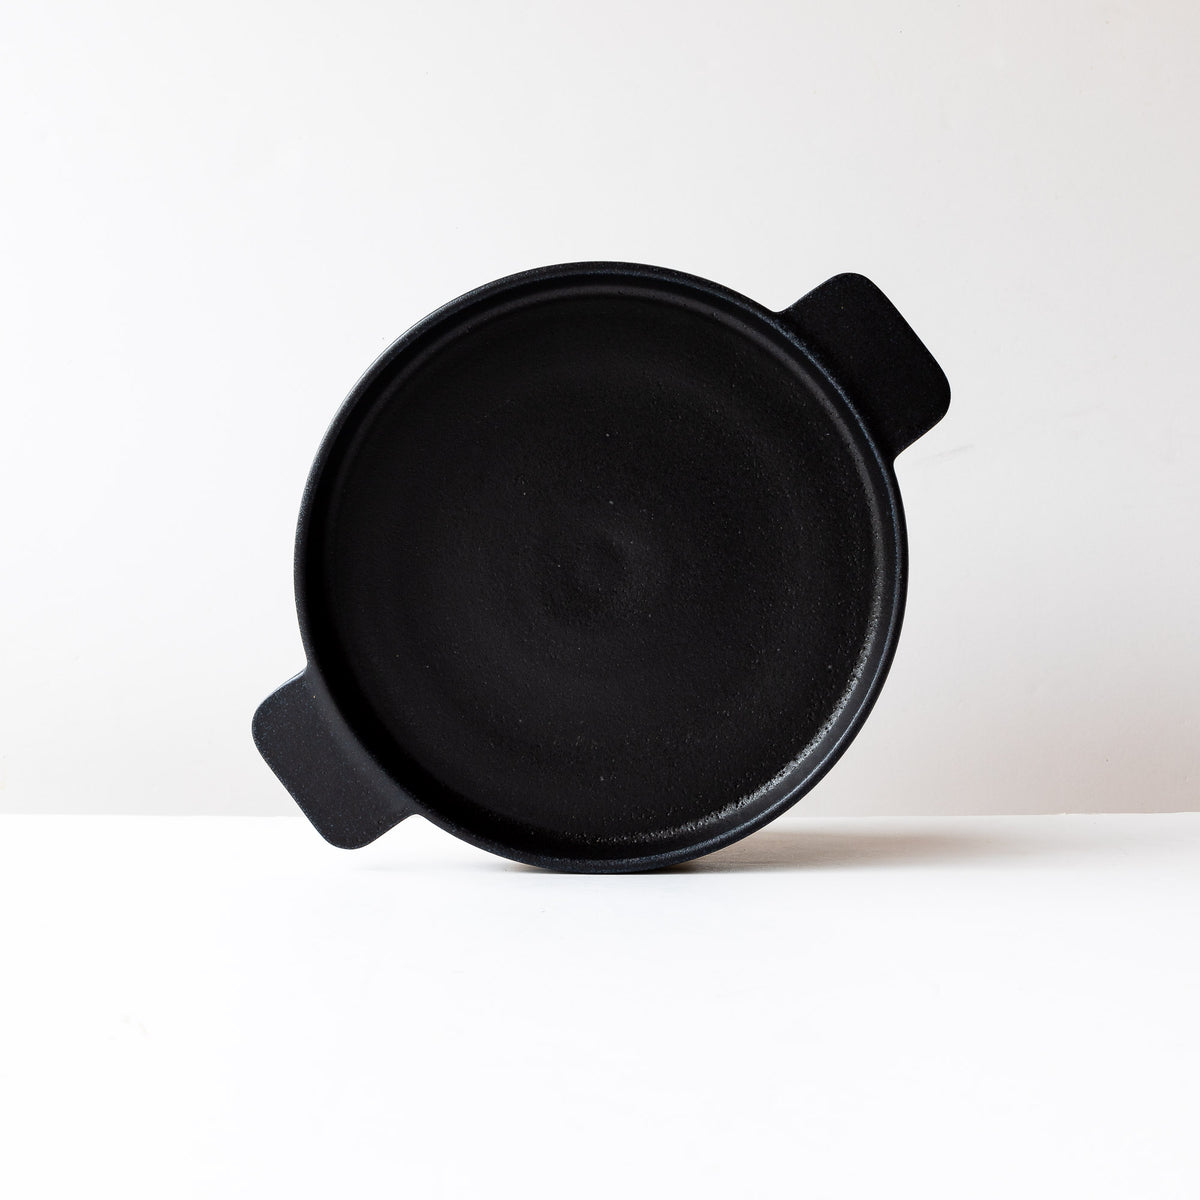 Black Handmade Round Stoneware Gratin Plate / Serving Plate - 10.5 Inch - Sold by Chic & Basta